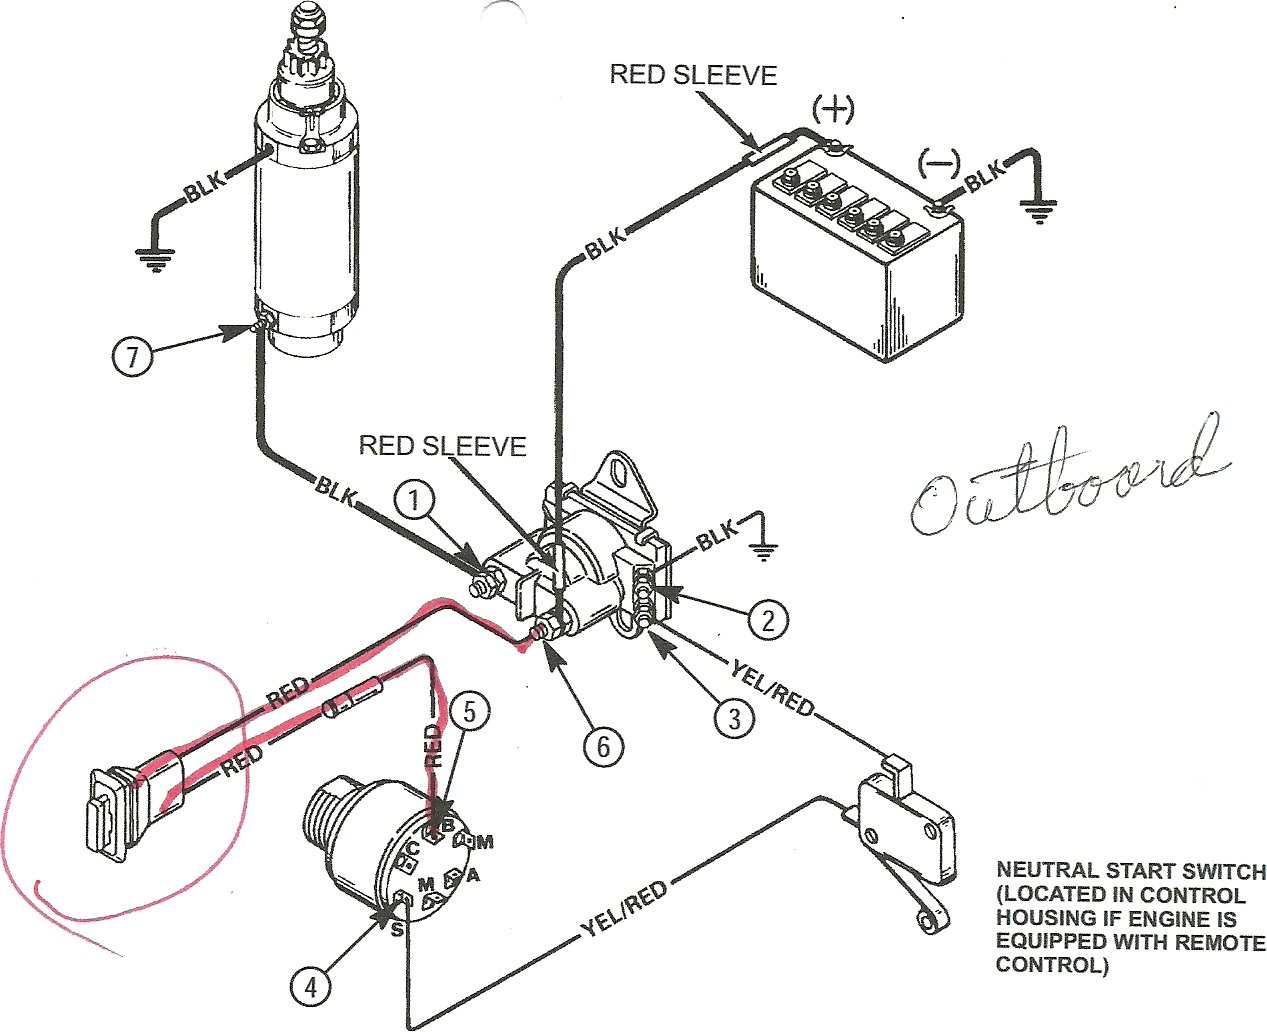 1996 Evinrude 40 Hp Wiring Diagram List Of Schematic Circuit 1990 Mercury 150 Johnson Solenoid Trusted Rh Dafpods Co